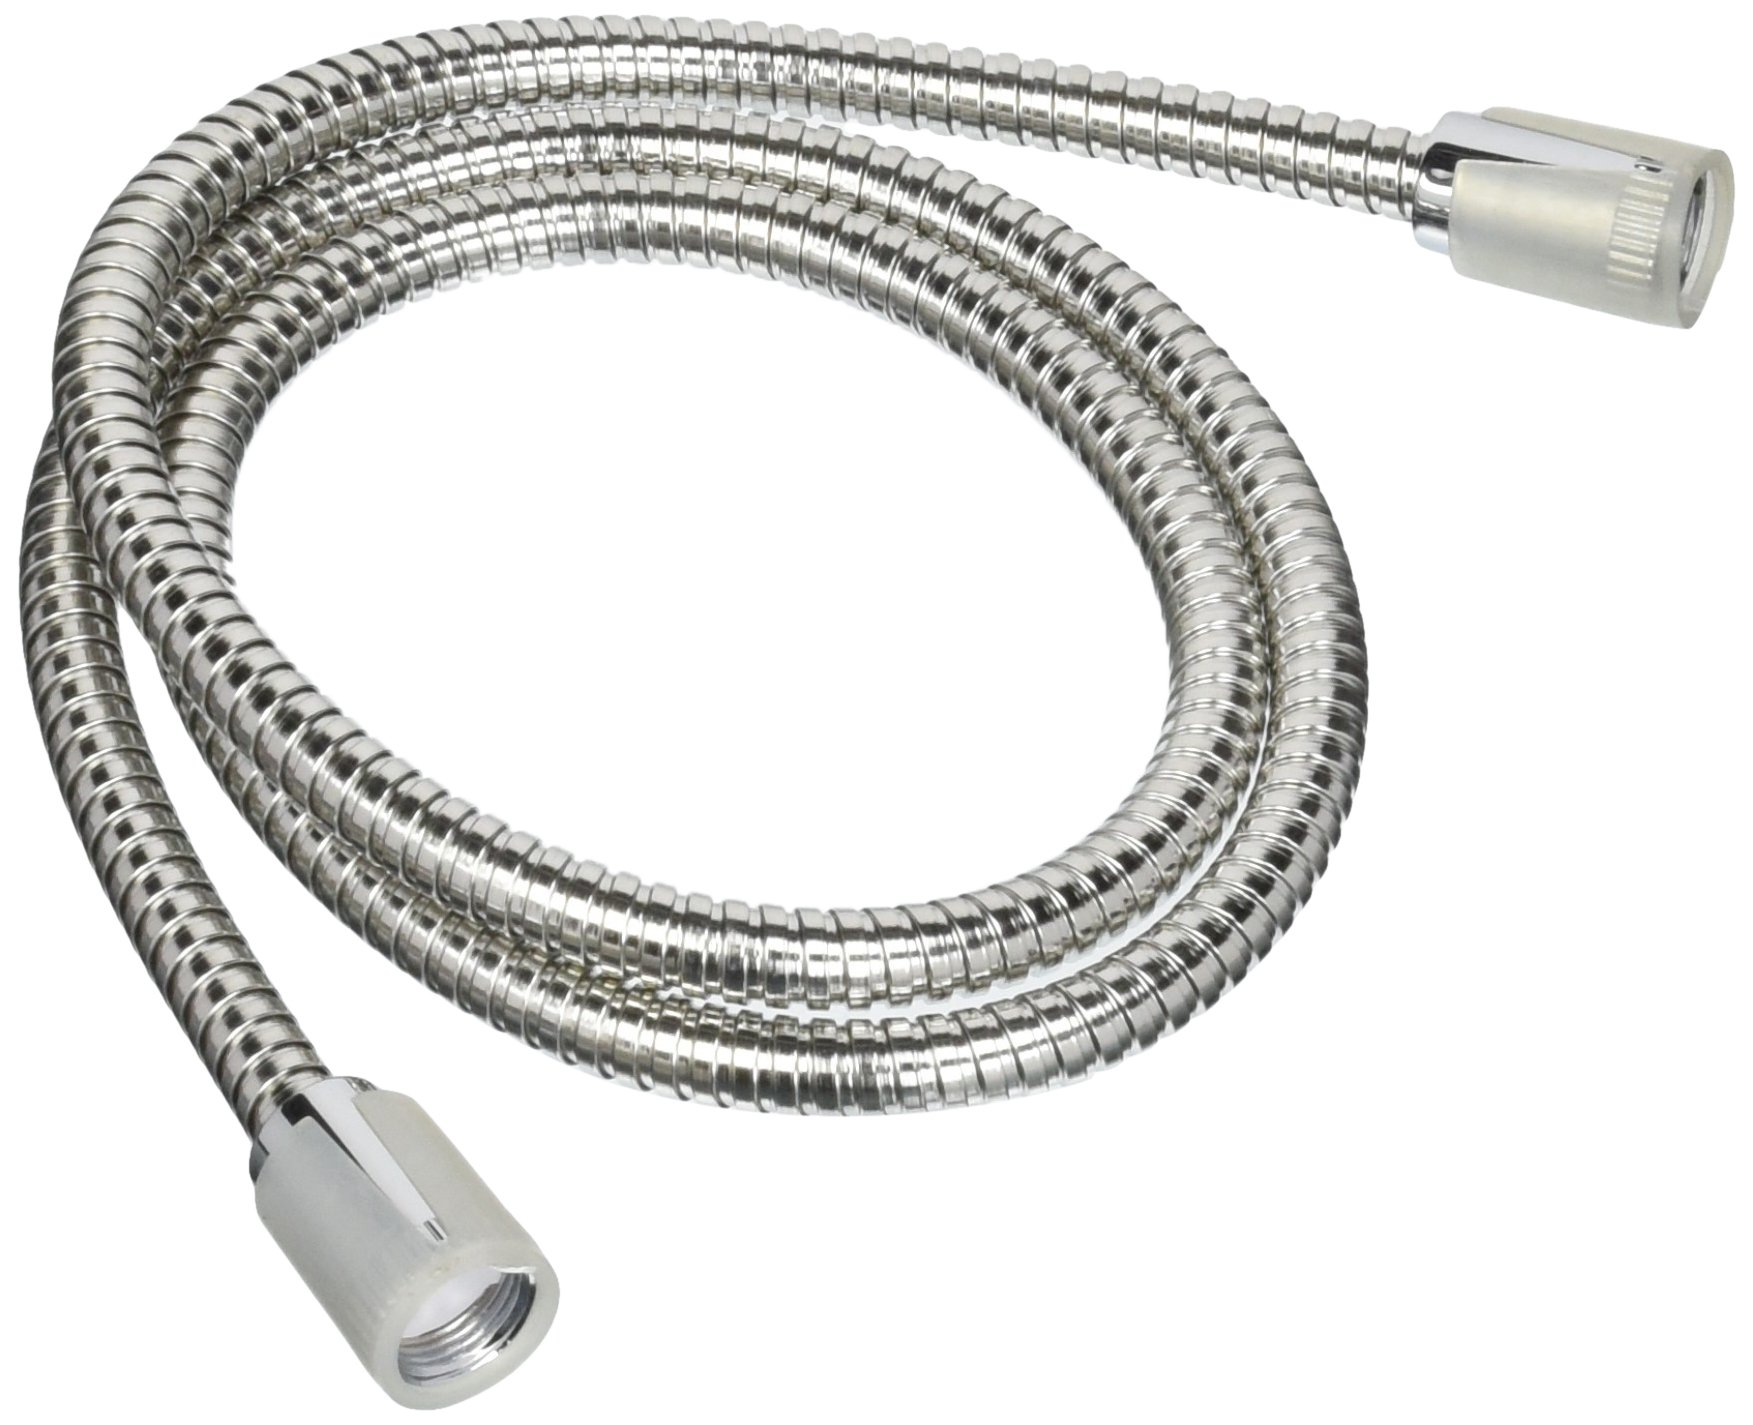 DELTA FAUCET 682-812 Master Plumber 59-Inch Stainless Steel Shower Hose by Master Plumber